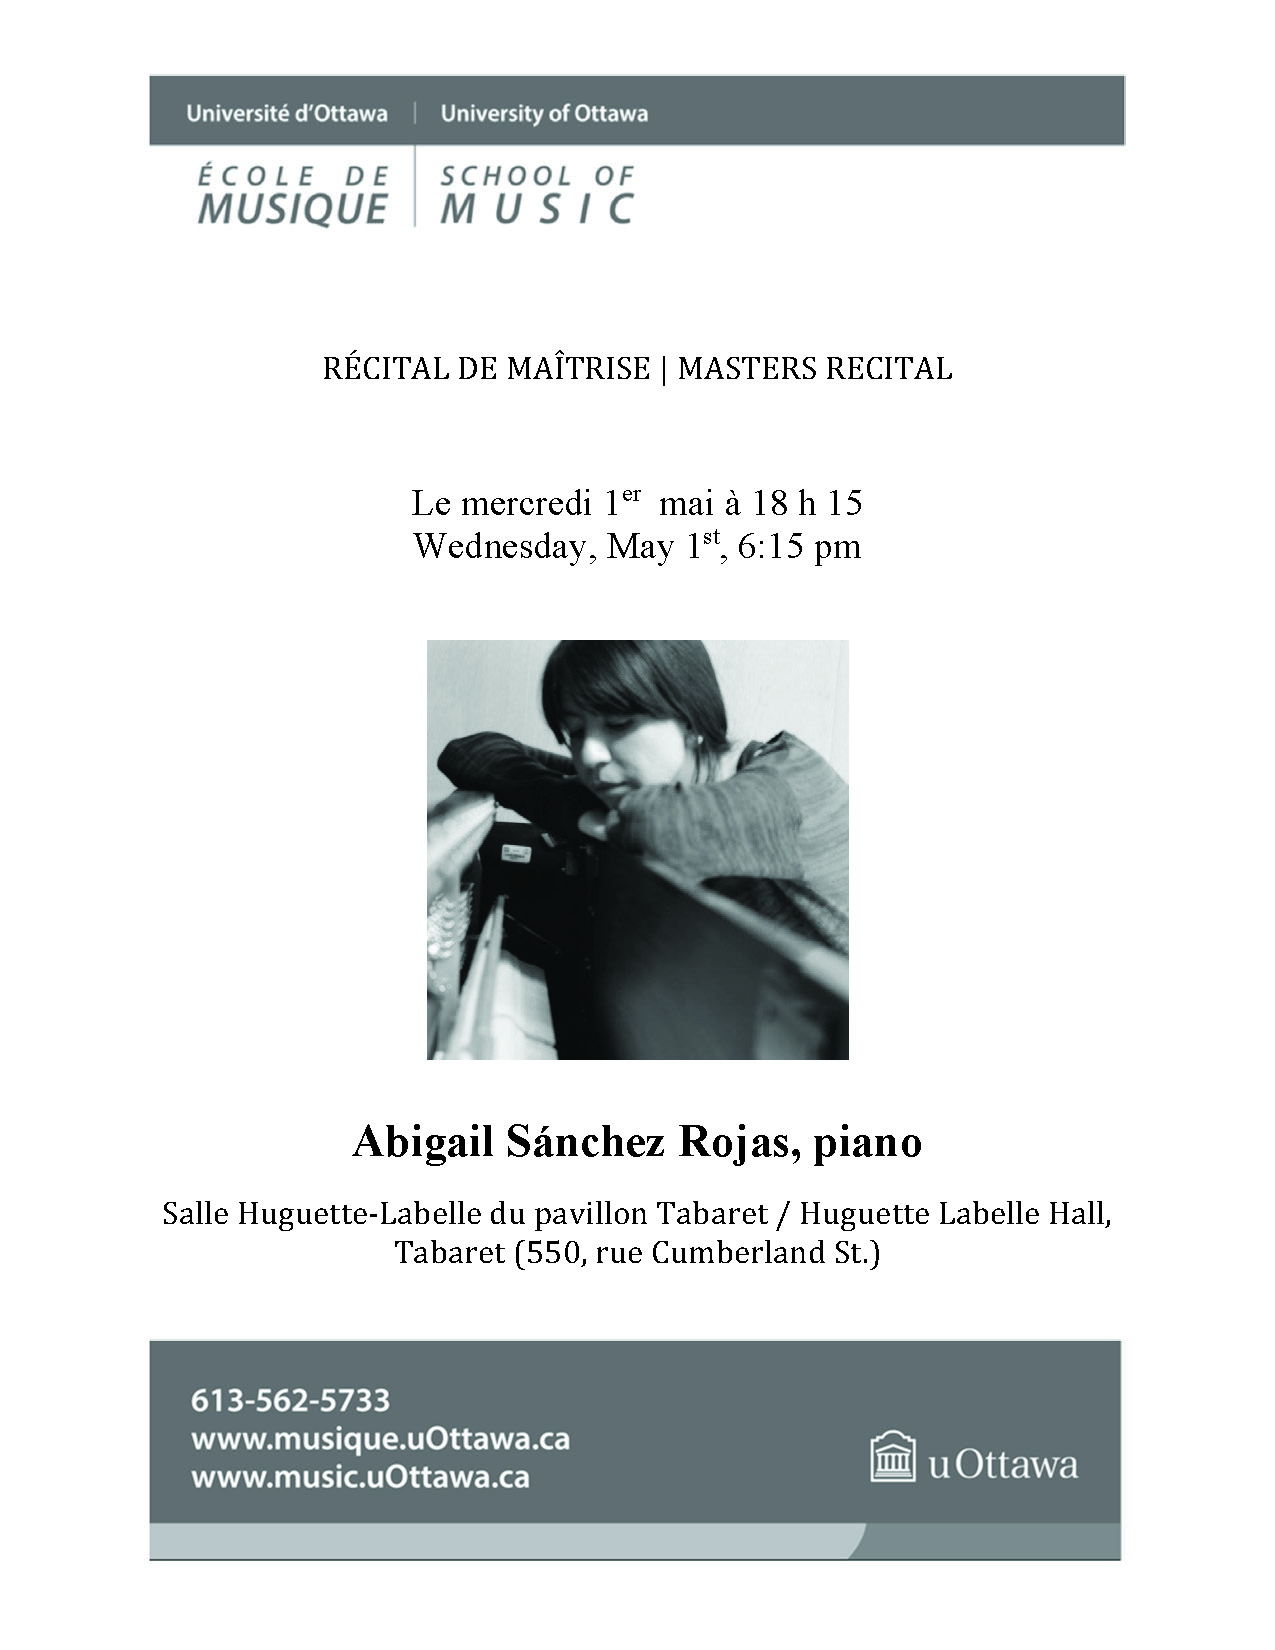 Recital program for Abigail Sanchez, p. 1